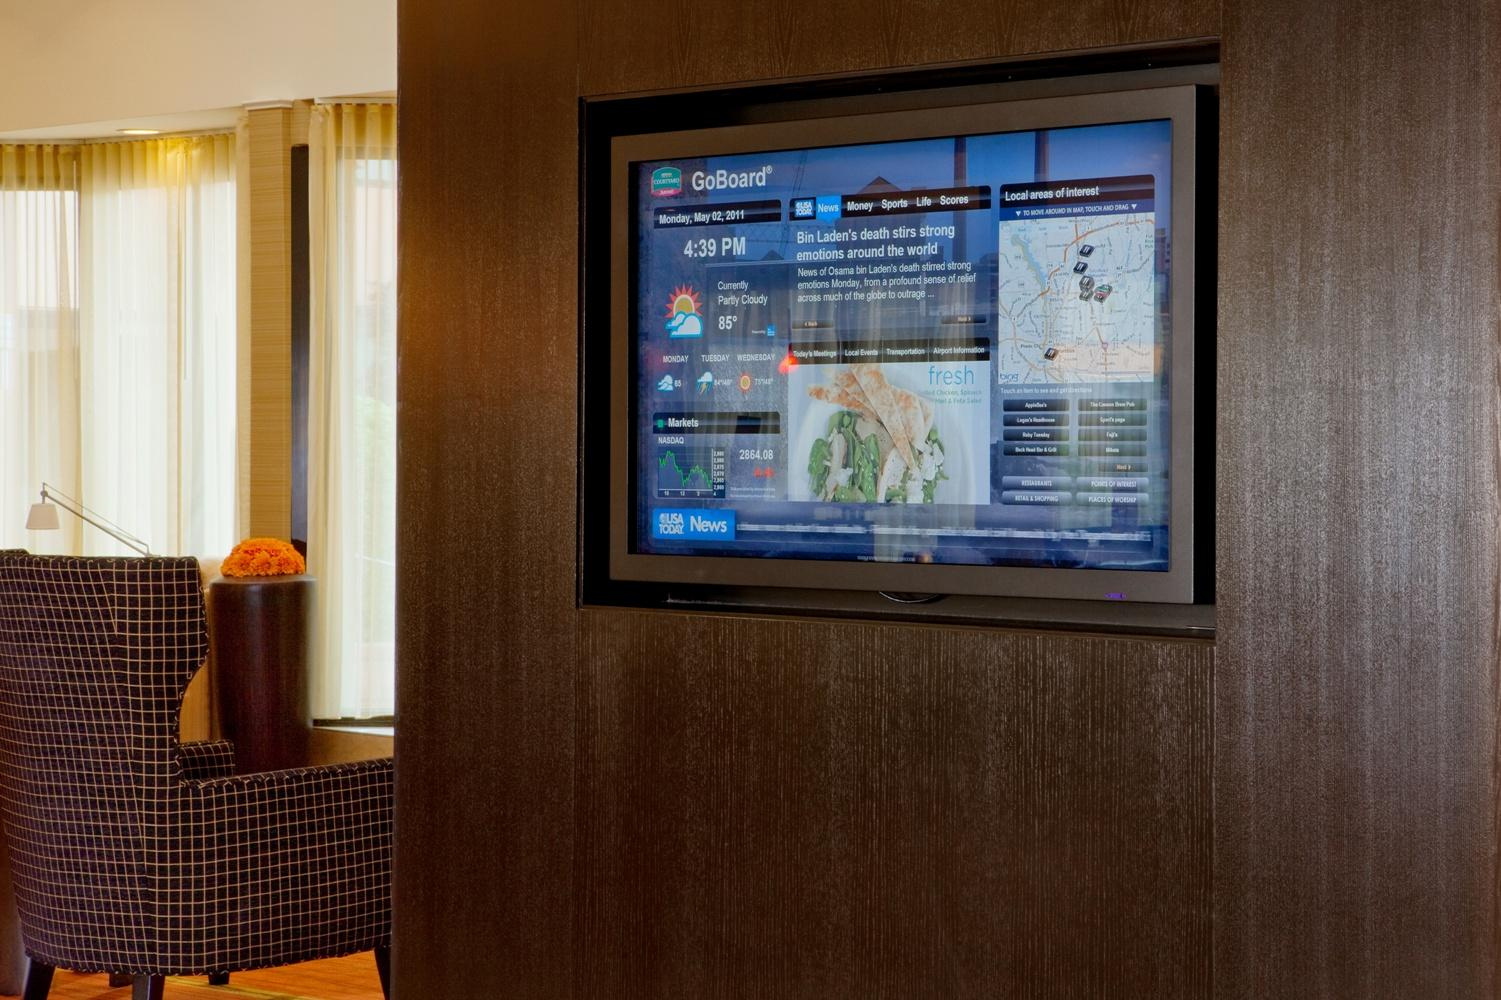 Courtyard by Marriott Columbus image 3